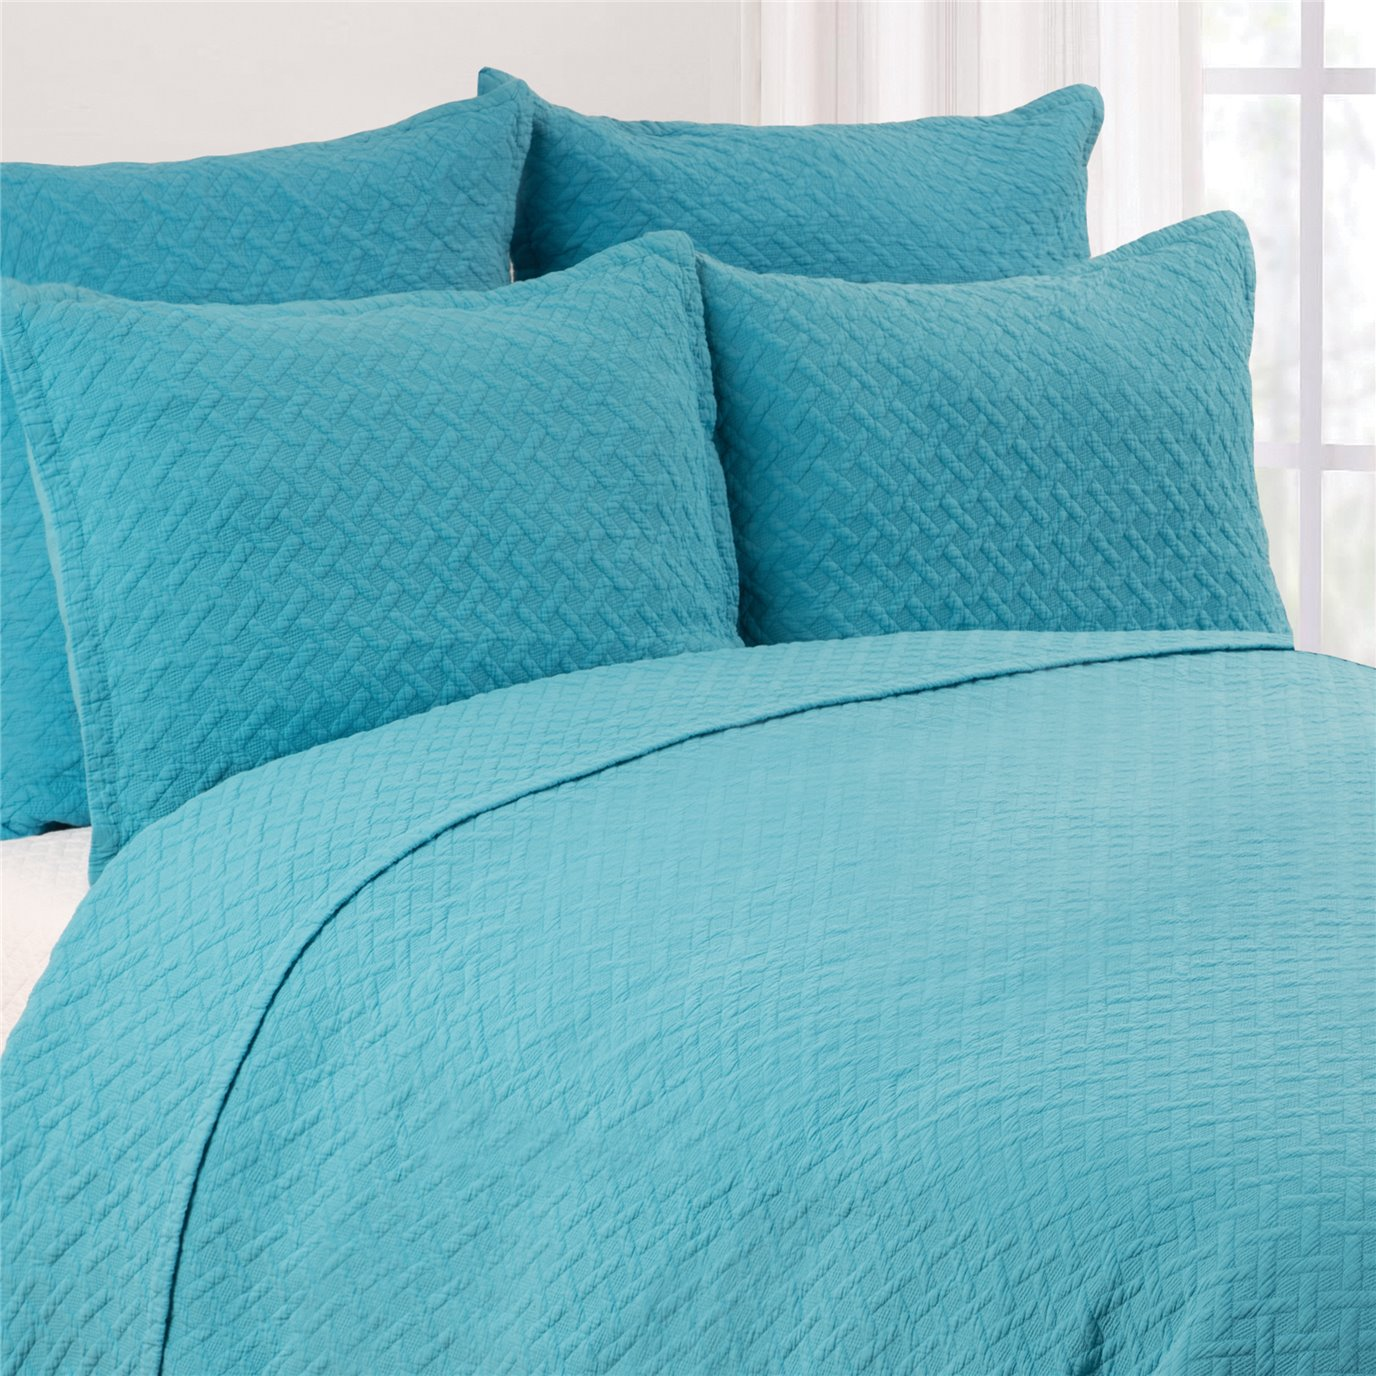 Basketweave Azul 3 Piece Queen Quilt Set